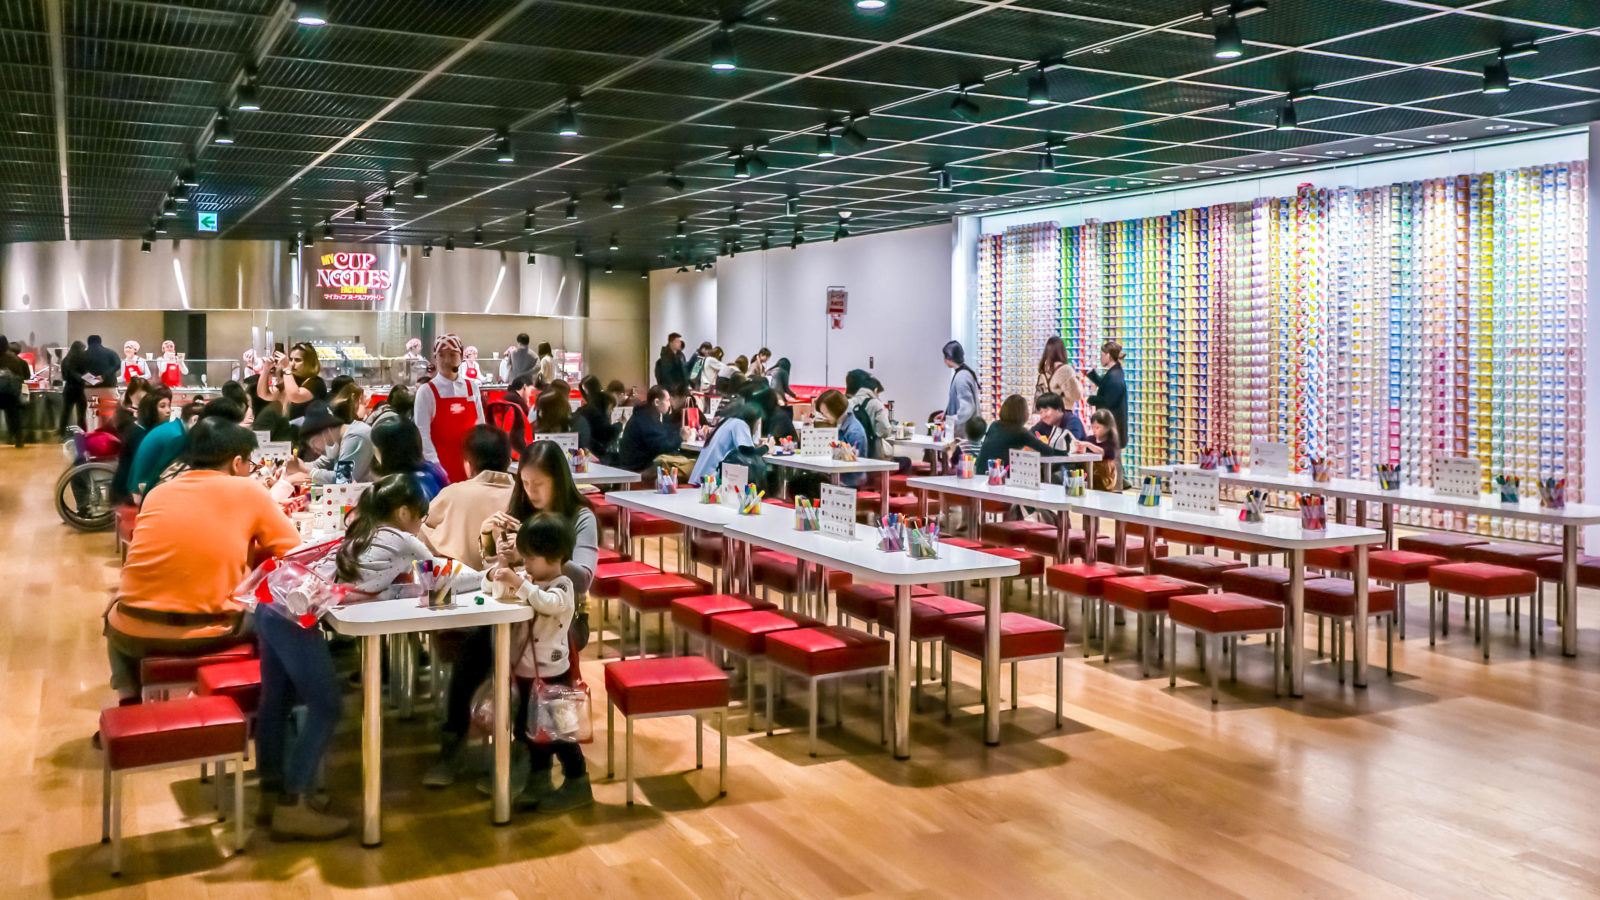 Cup Noodle Musuem Osaka Japan   Alexis Jetsets   Creating your own